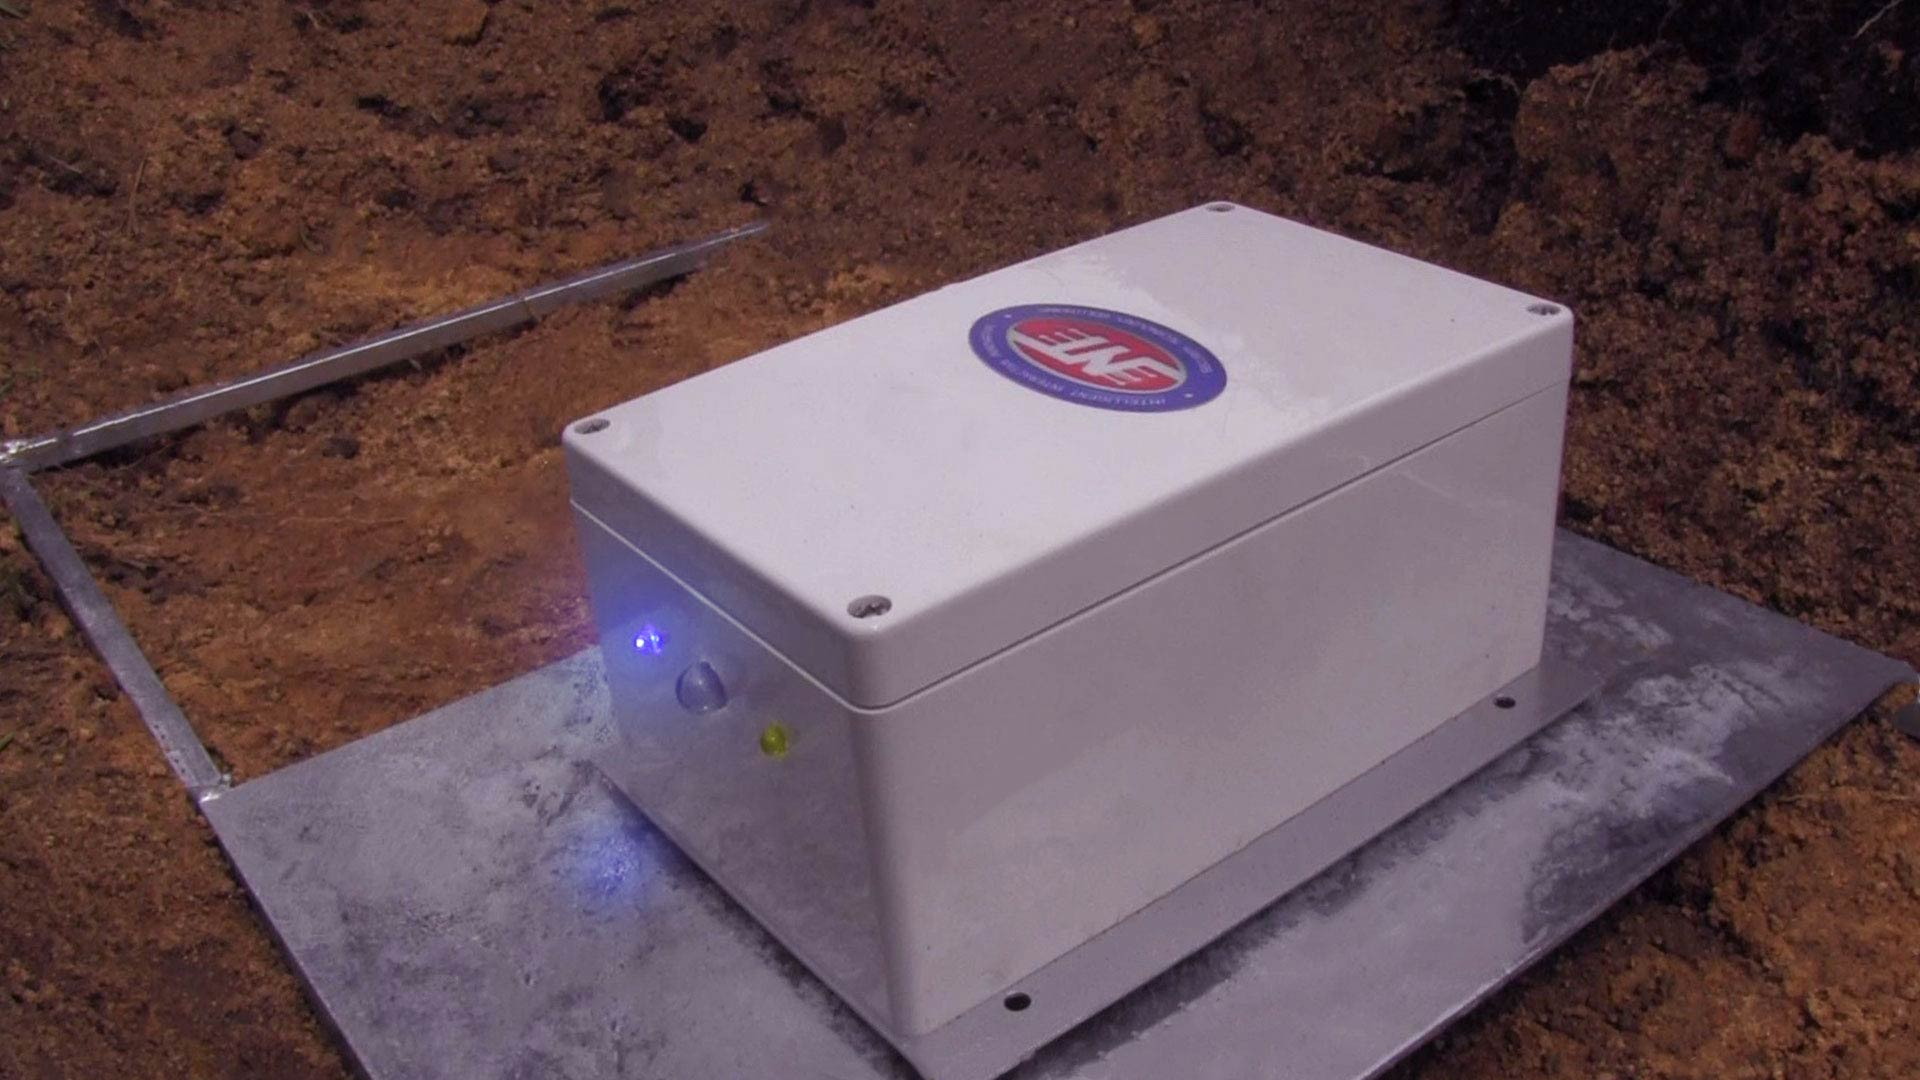 Underground alarm being tested in the field before installation. This device is placed on a metal frame that is designed to increase the vibration detection radius.